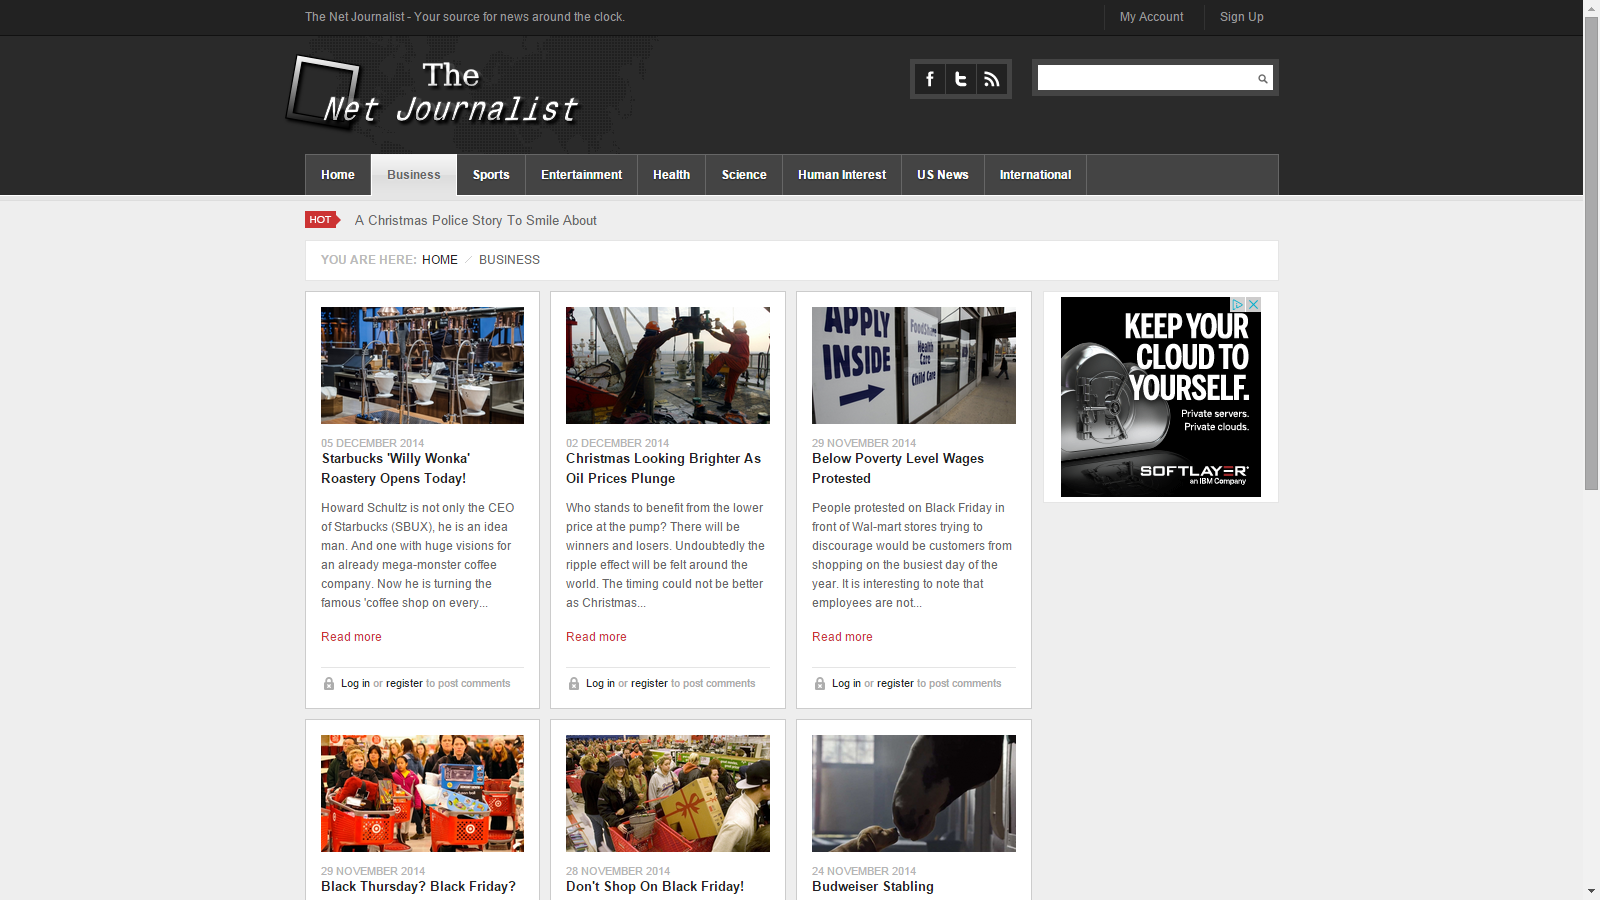 The Net Journalist News Page